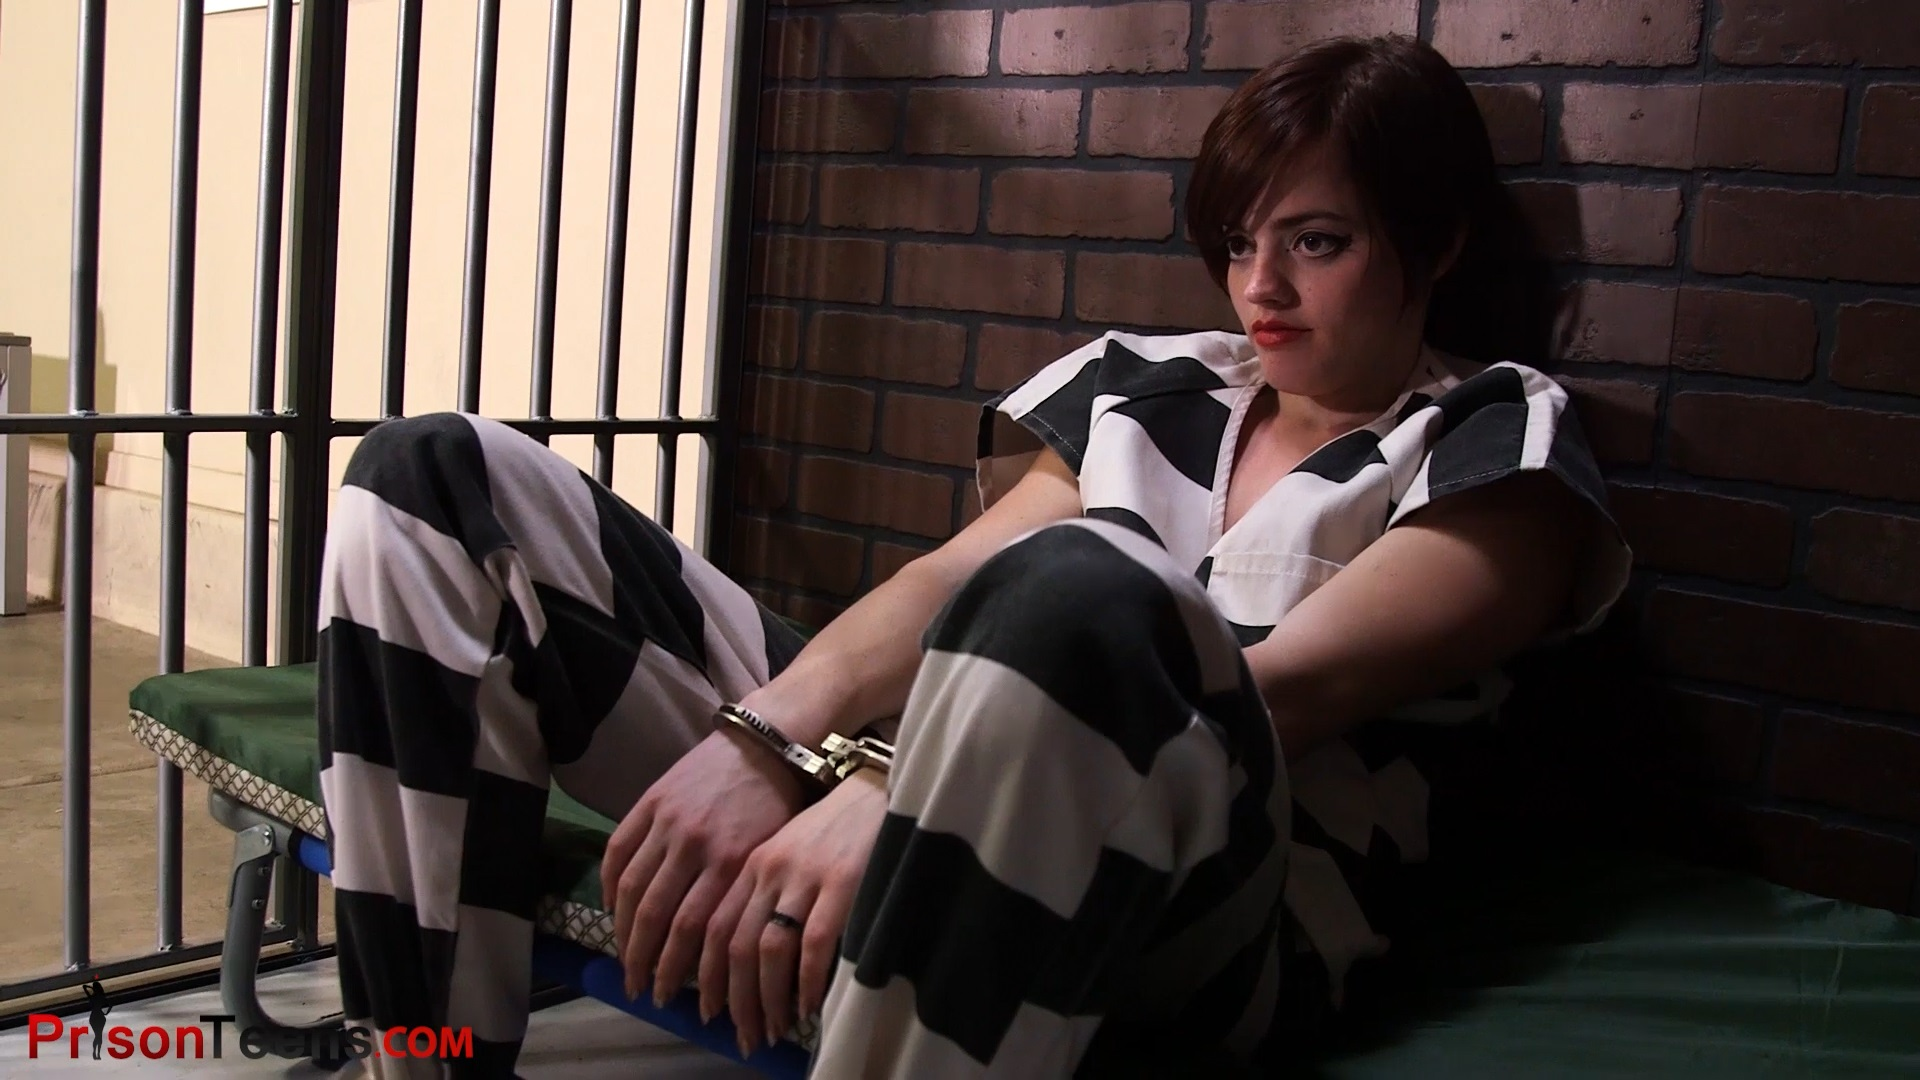 Violet Pixie Gets Searched and Thrown in the Cell